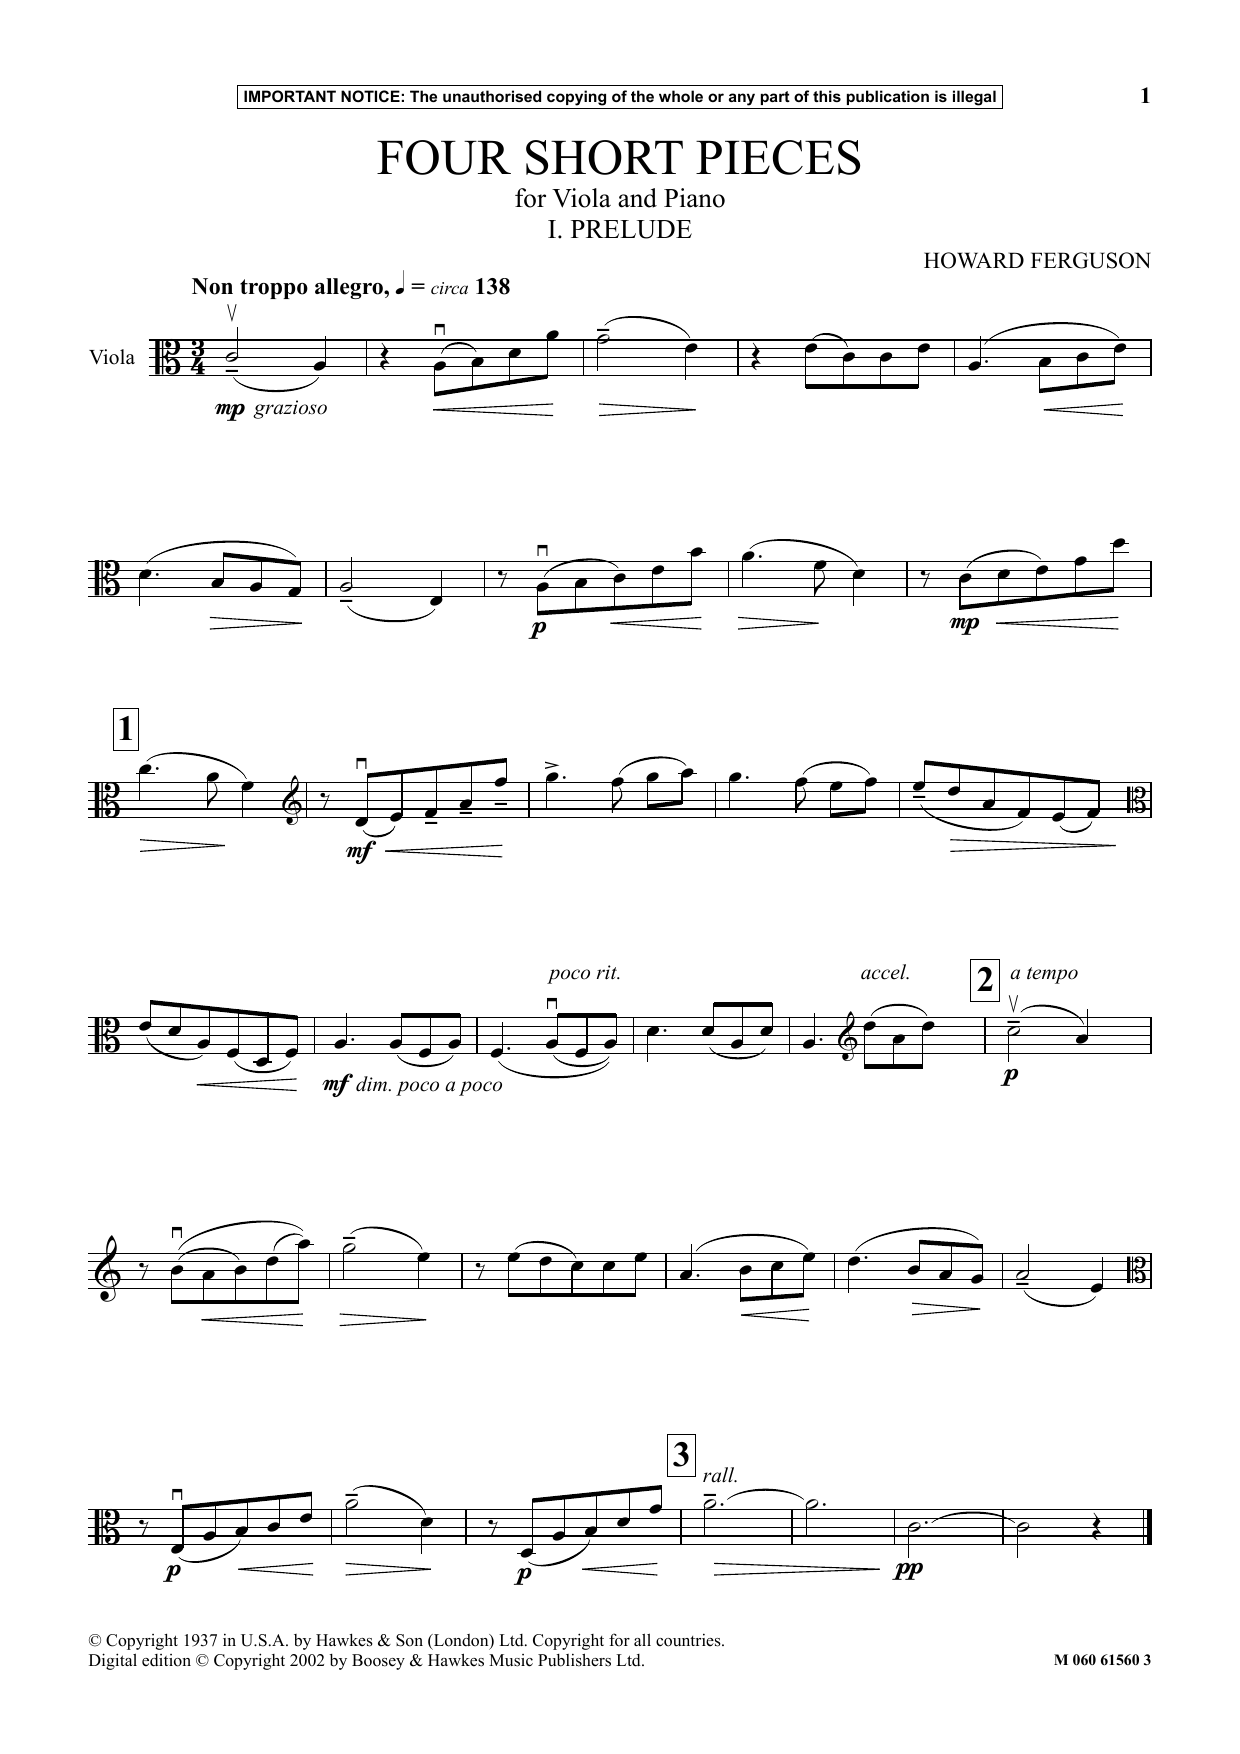 Howard Ferguson I. Prelude (from Four Short Pieces For Viola And Piano) sheet music notes and chords. Download Printable PDF.